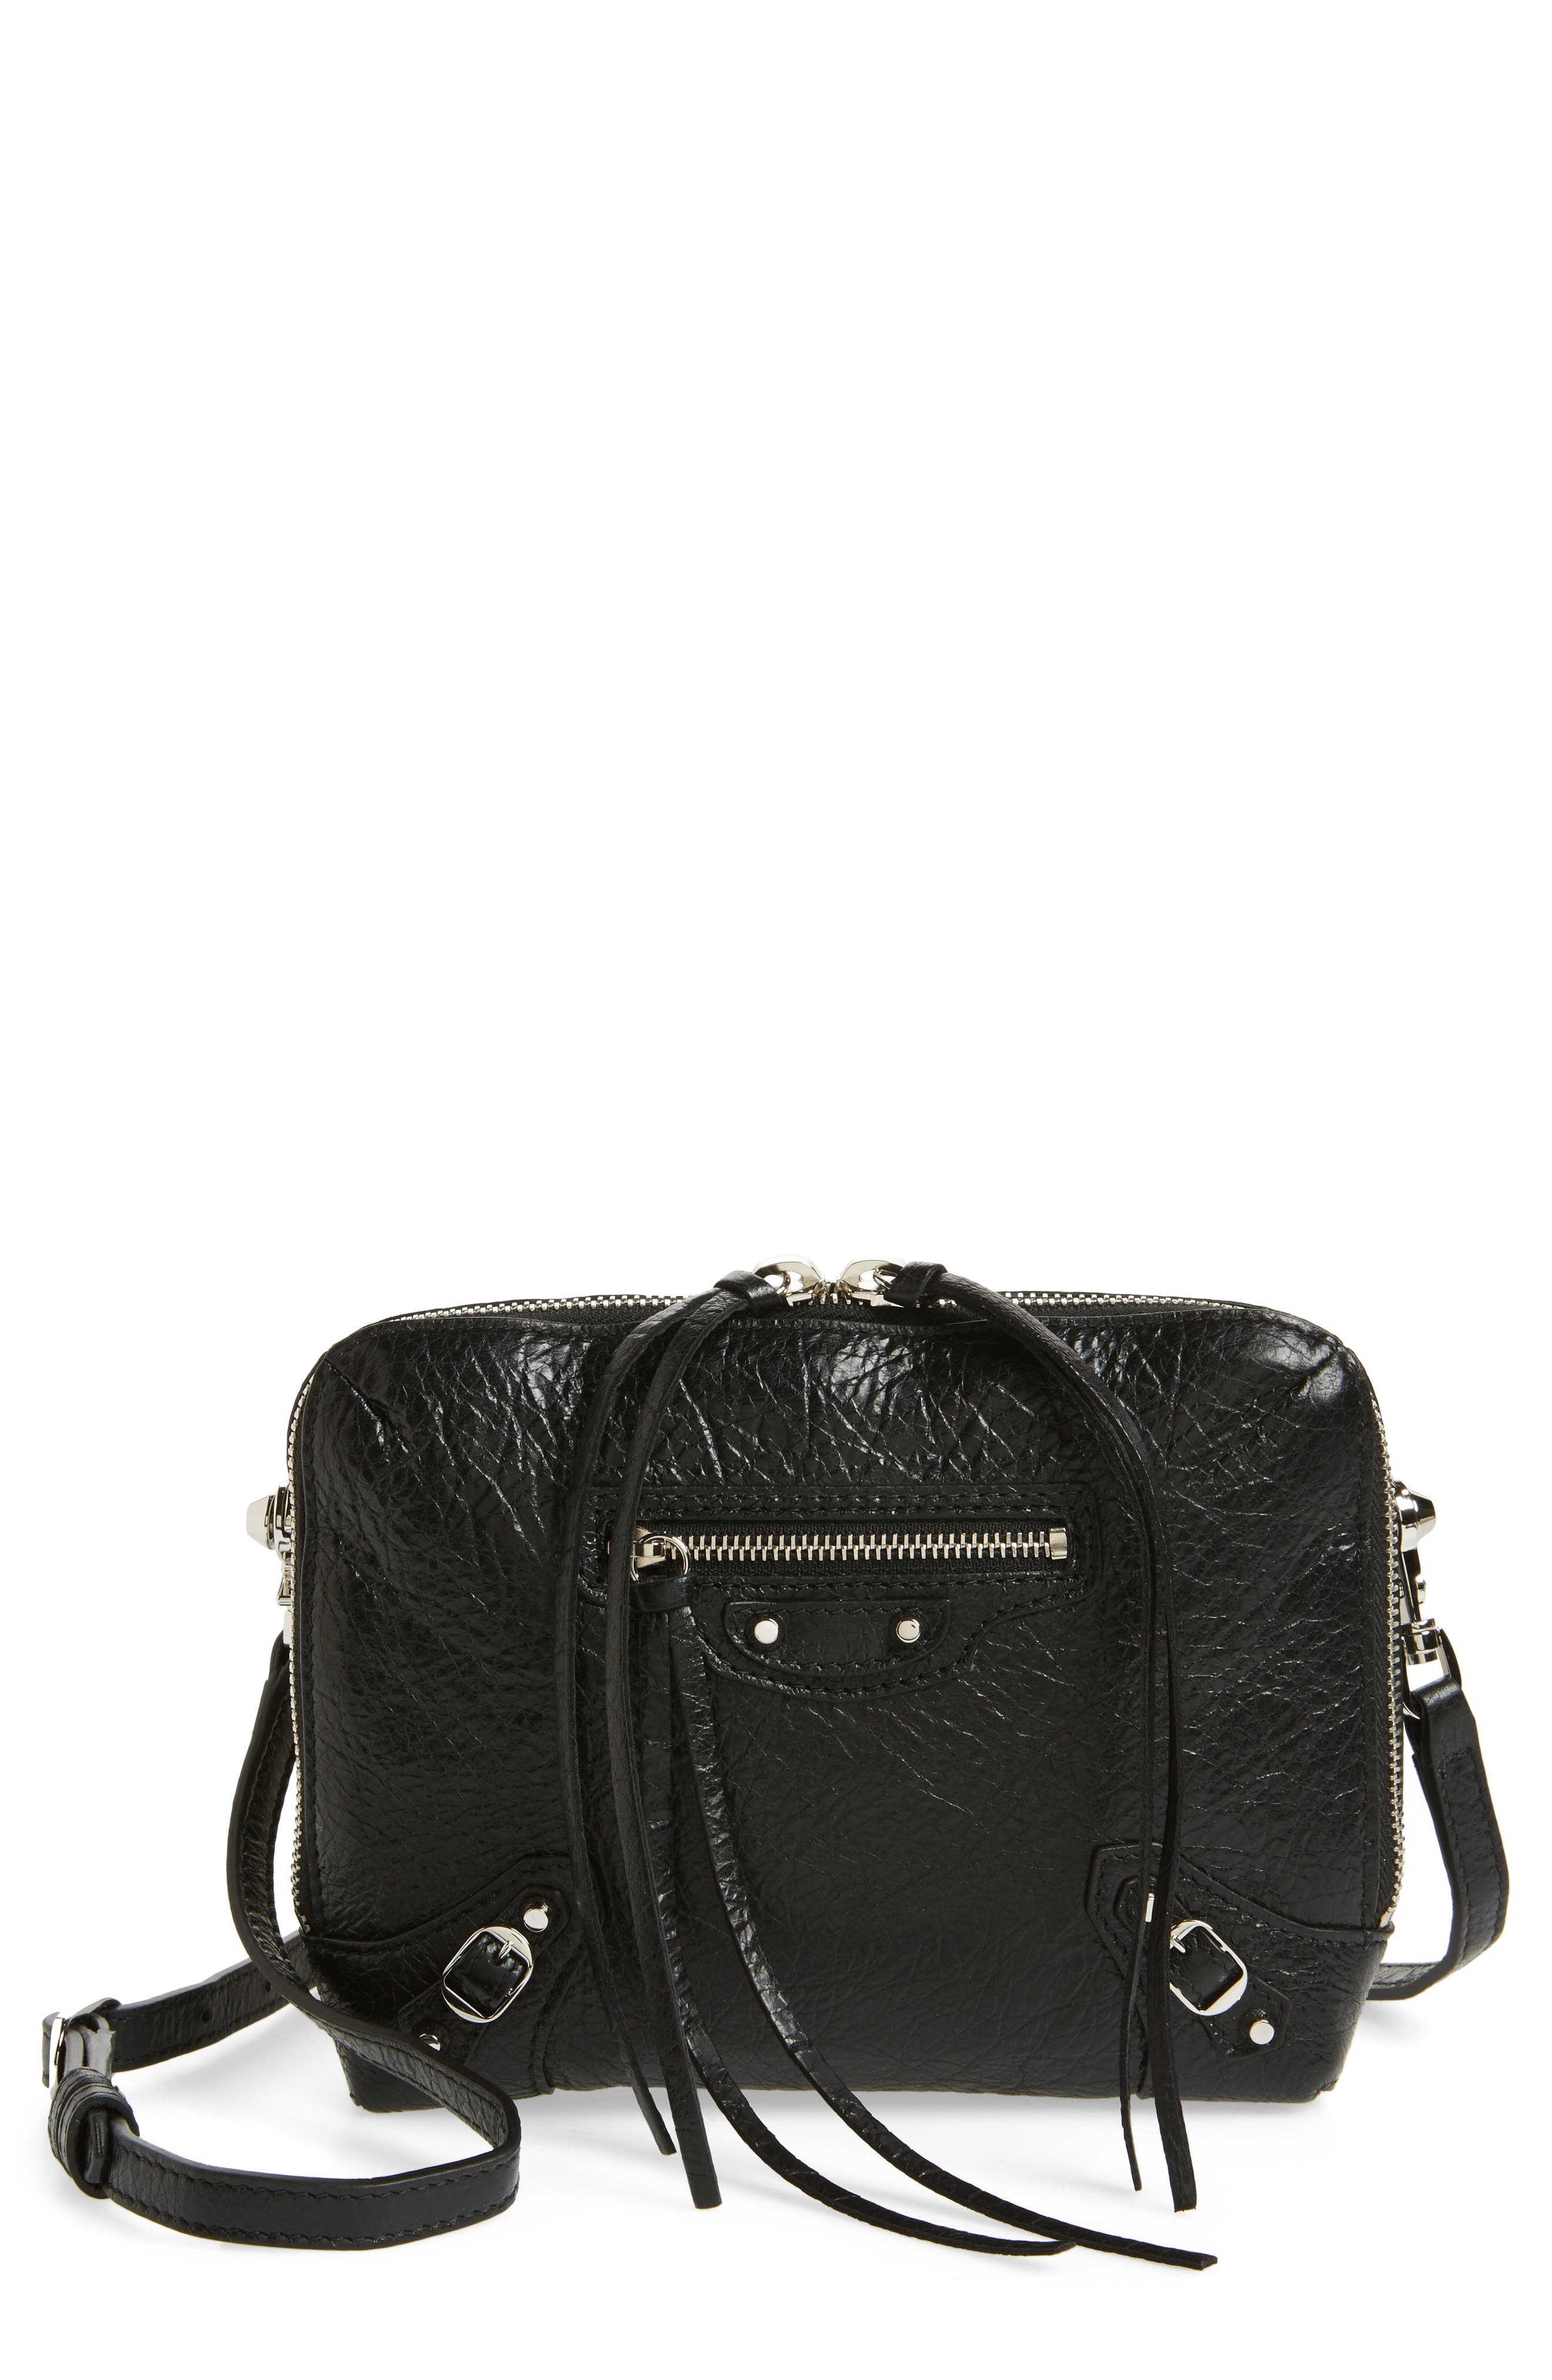 Extra Small Classic Reporter Leather Shoulder Bag,                             Main thumbnail 1, color,                             Noir